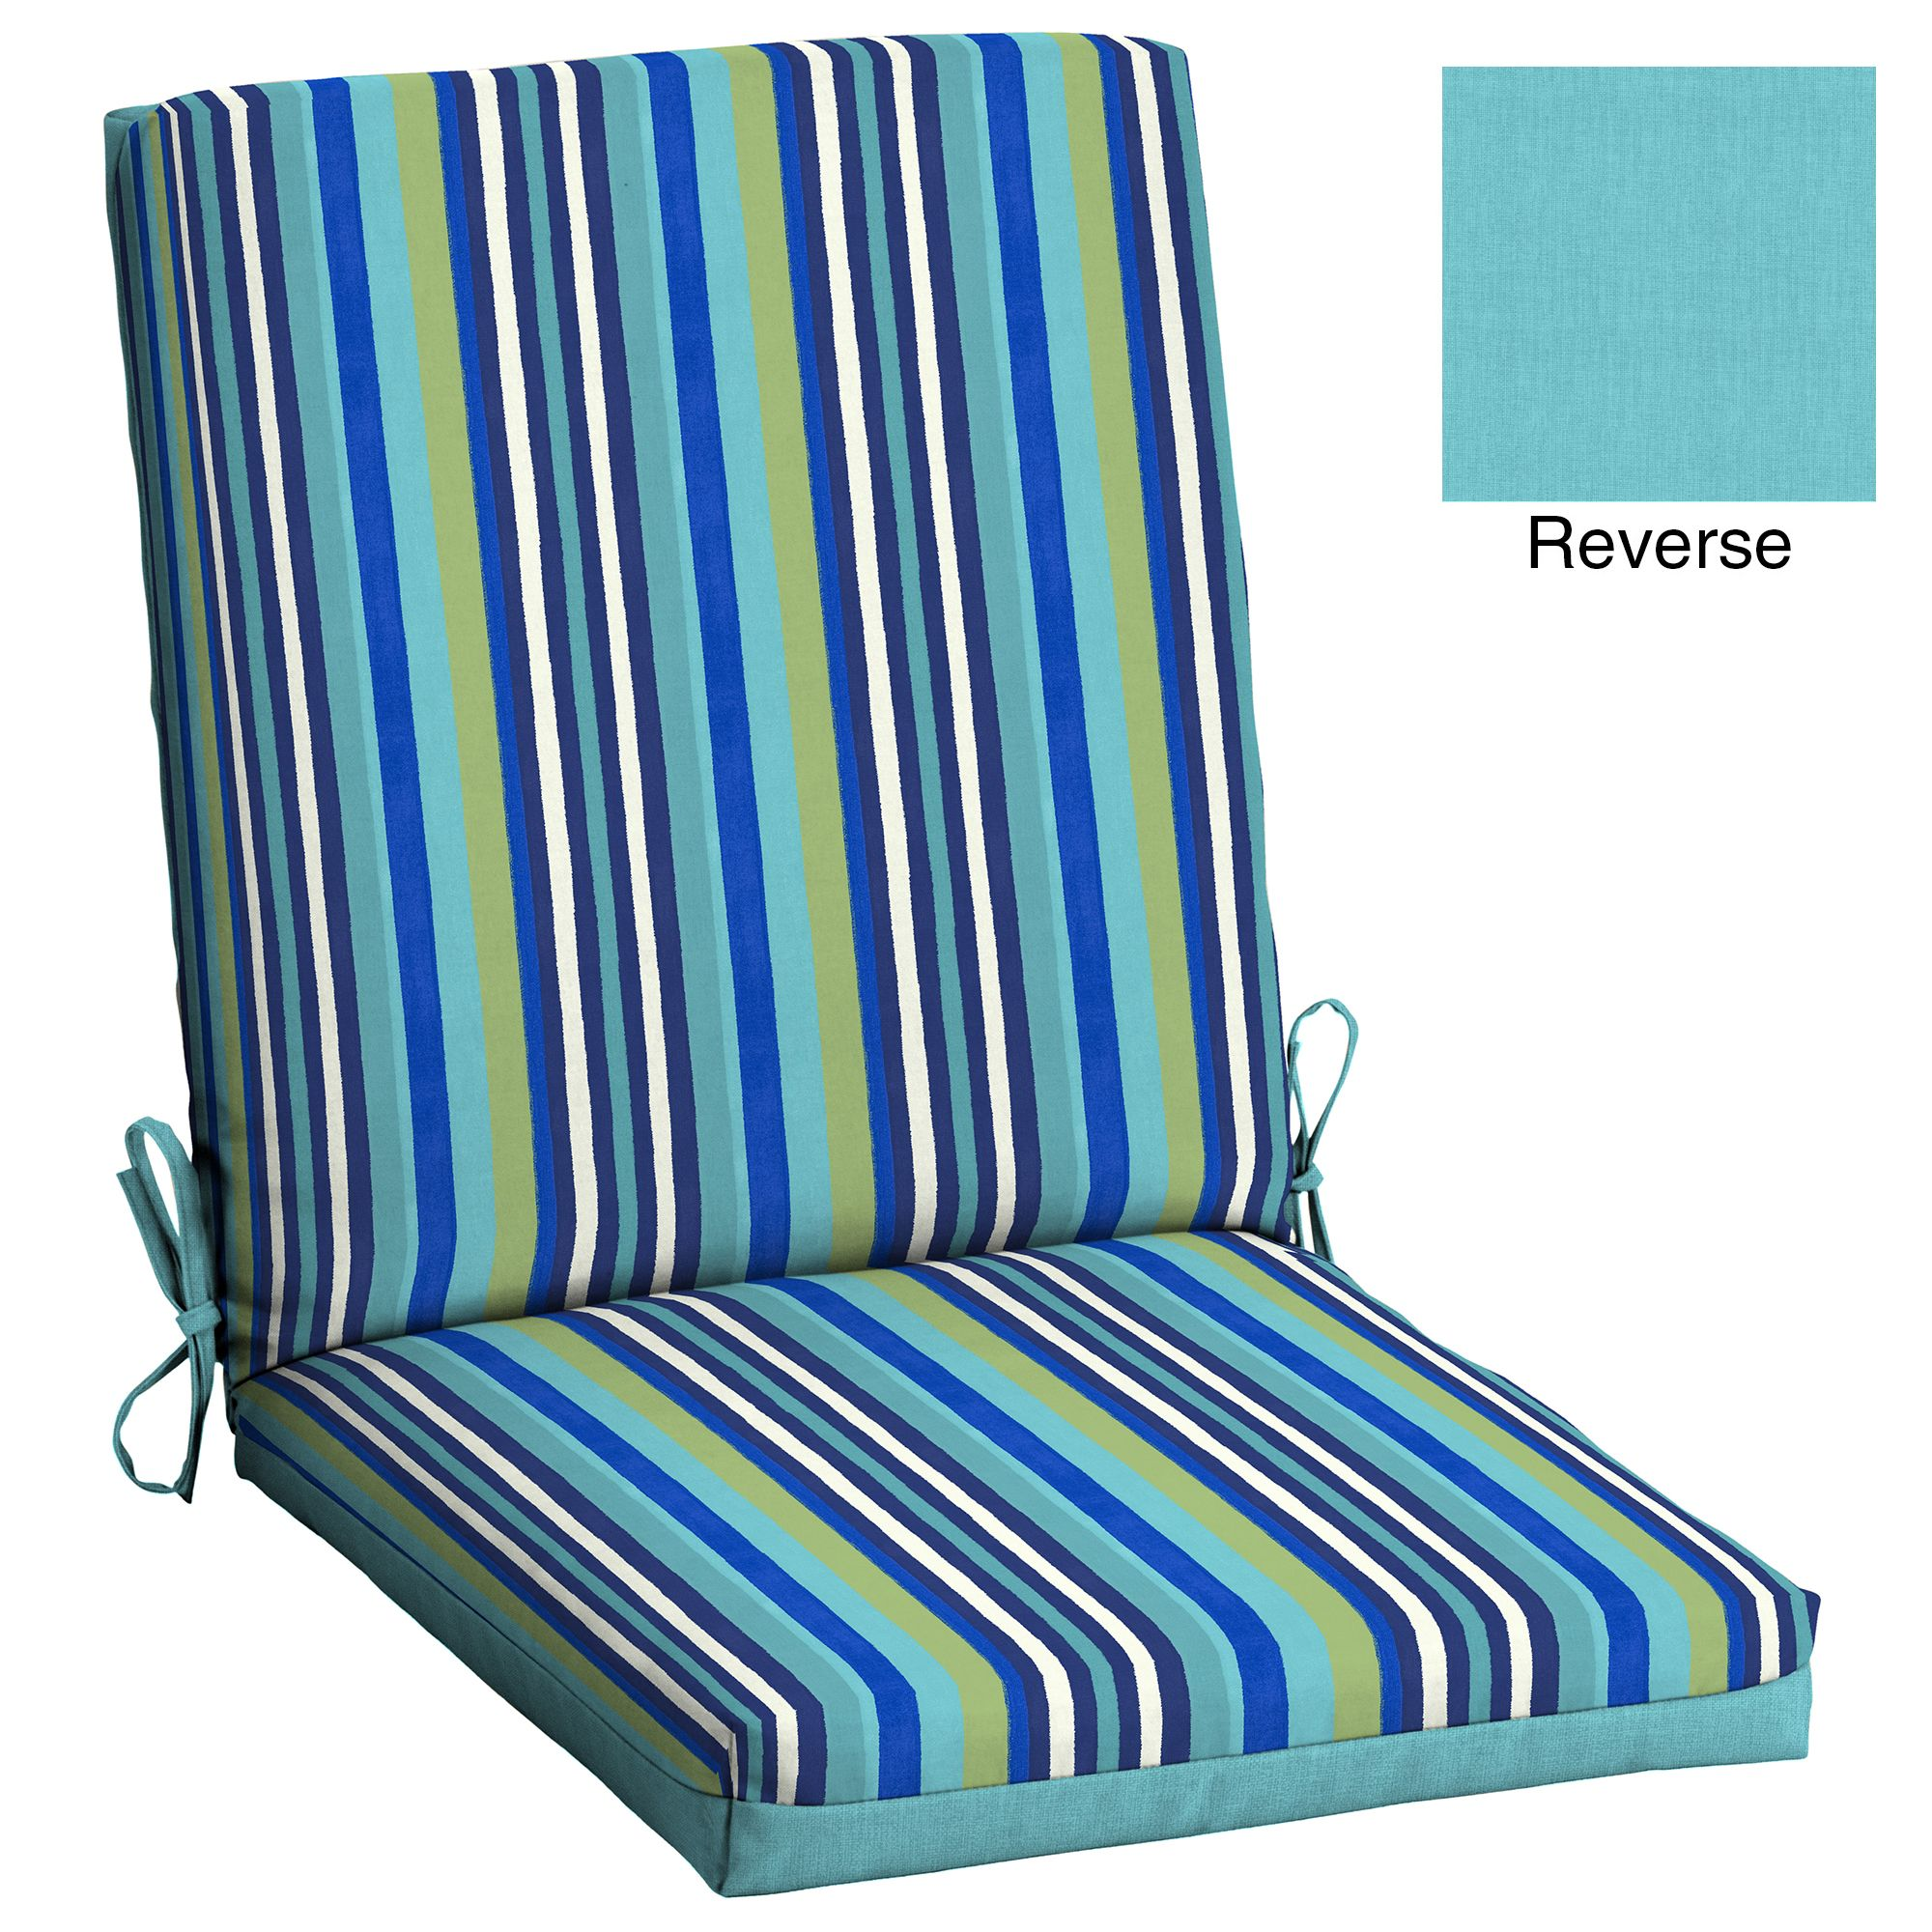 Mainstays Turquoise Stripe 1 Piece Outdoor Dining Chair Cushion Homedecorideas